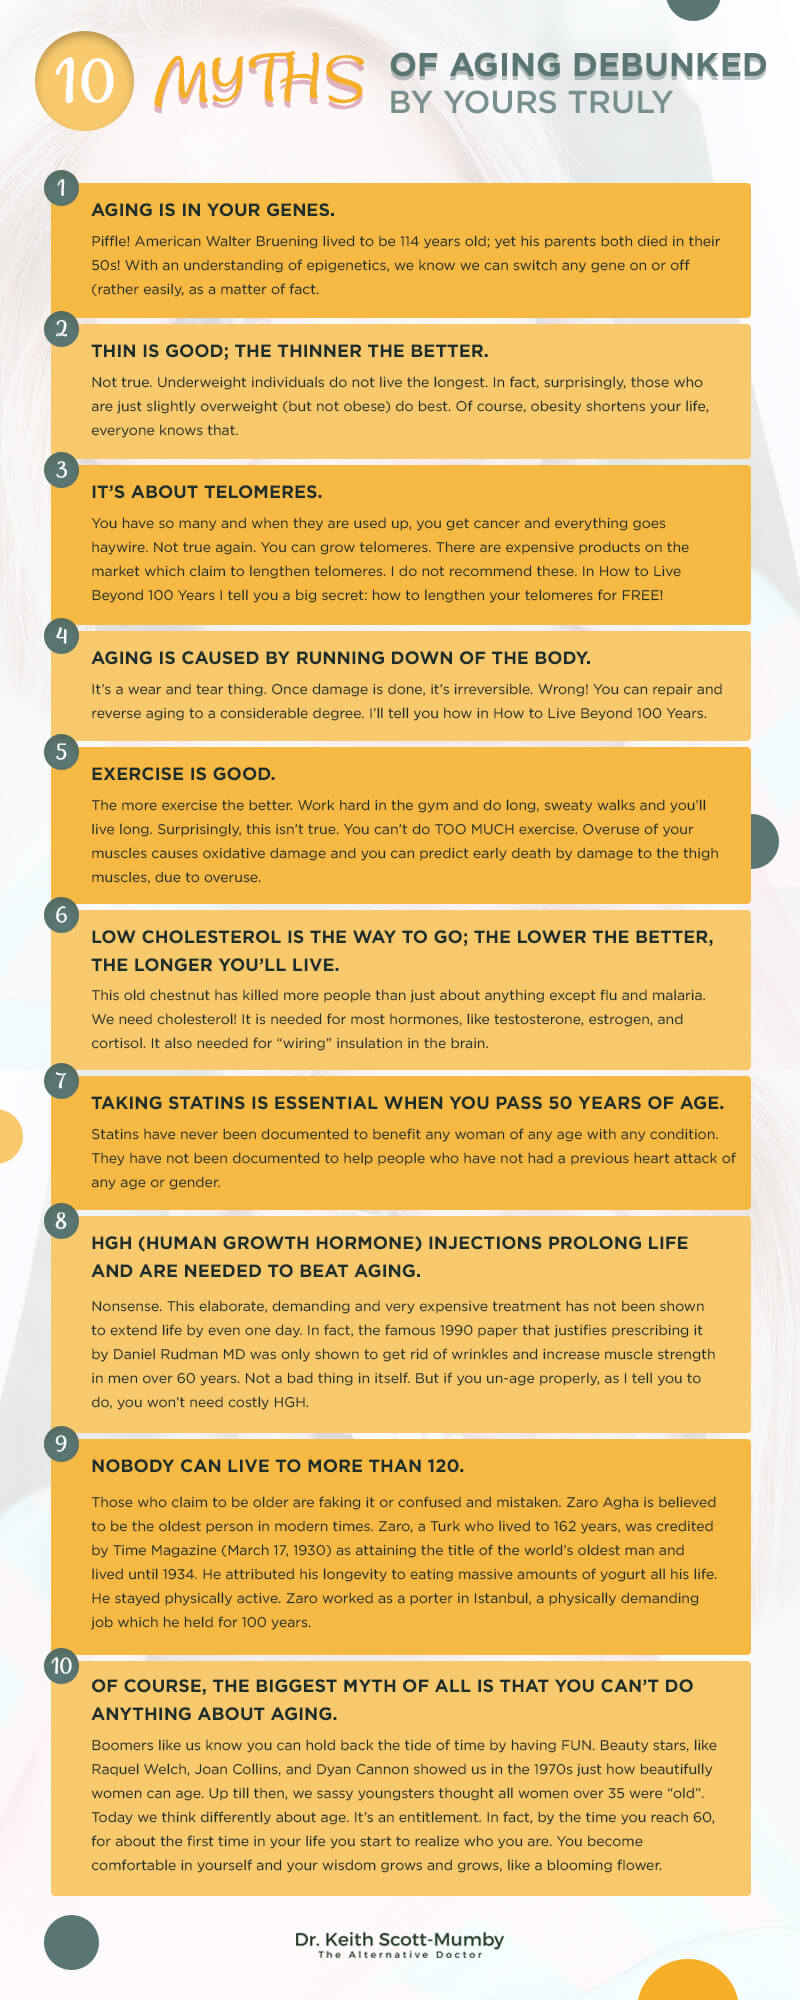 10 Myths About Aging